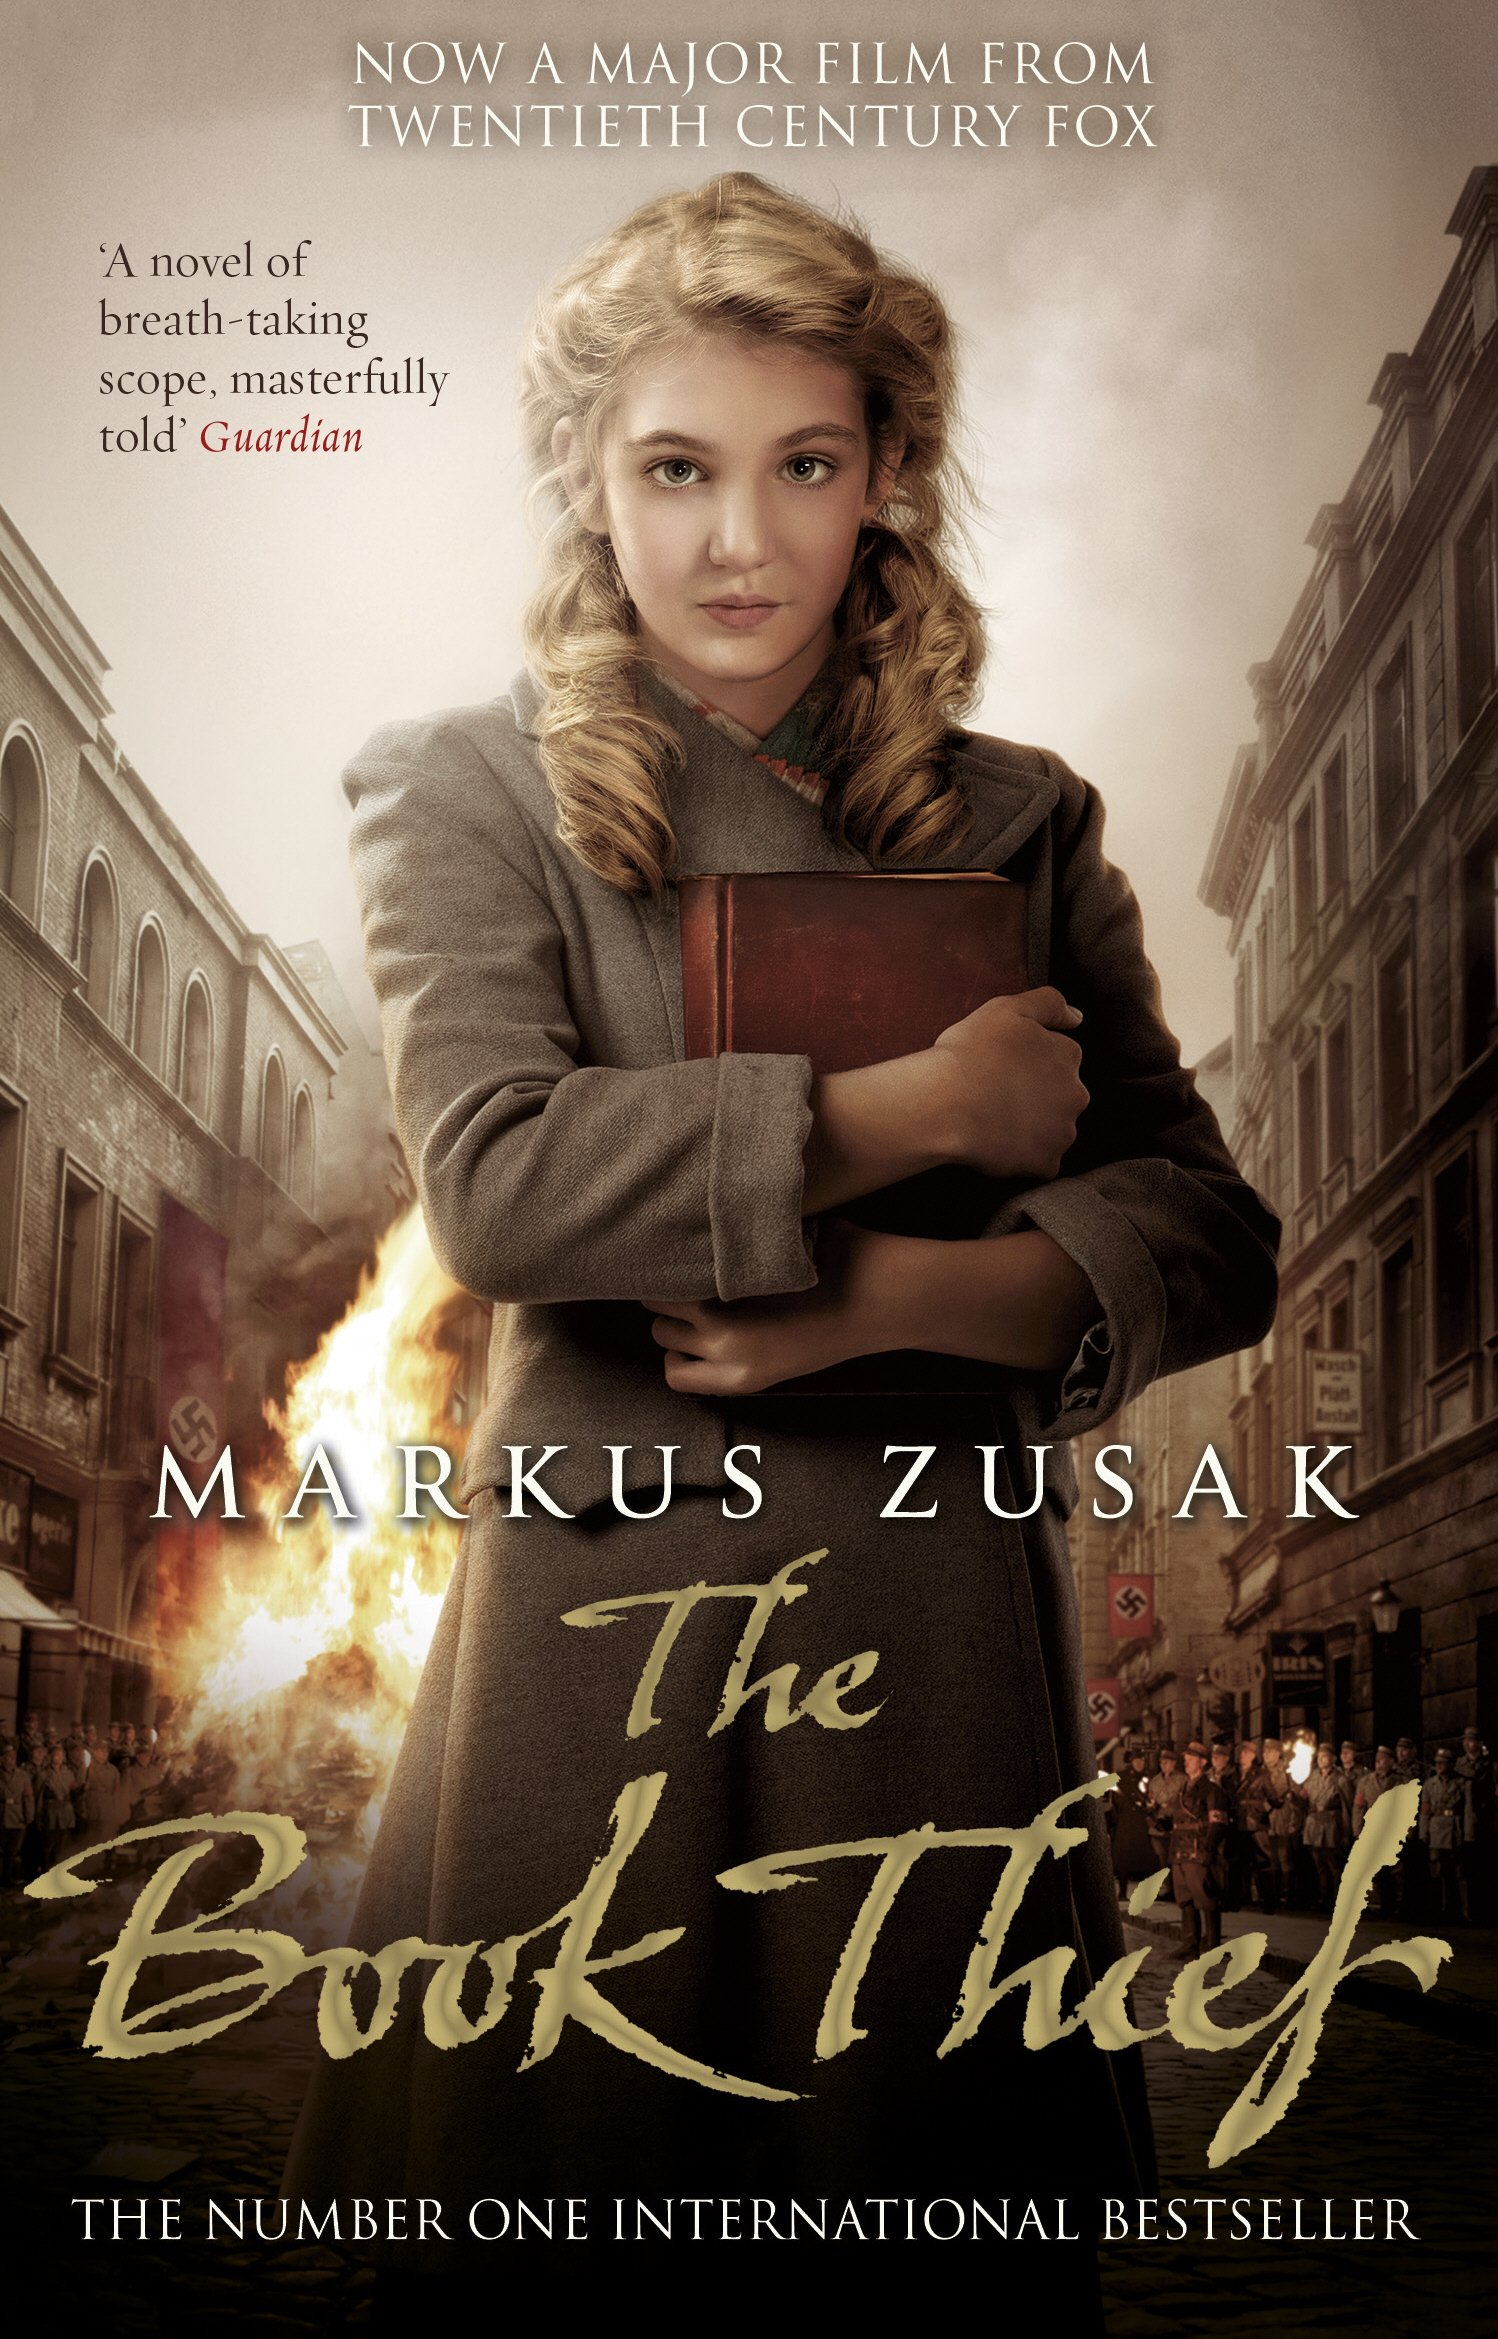 the book thief co uk markus zusak 9780552779739 books